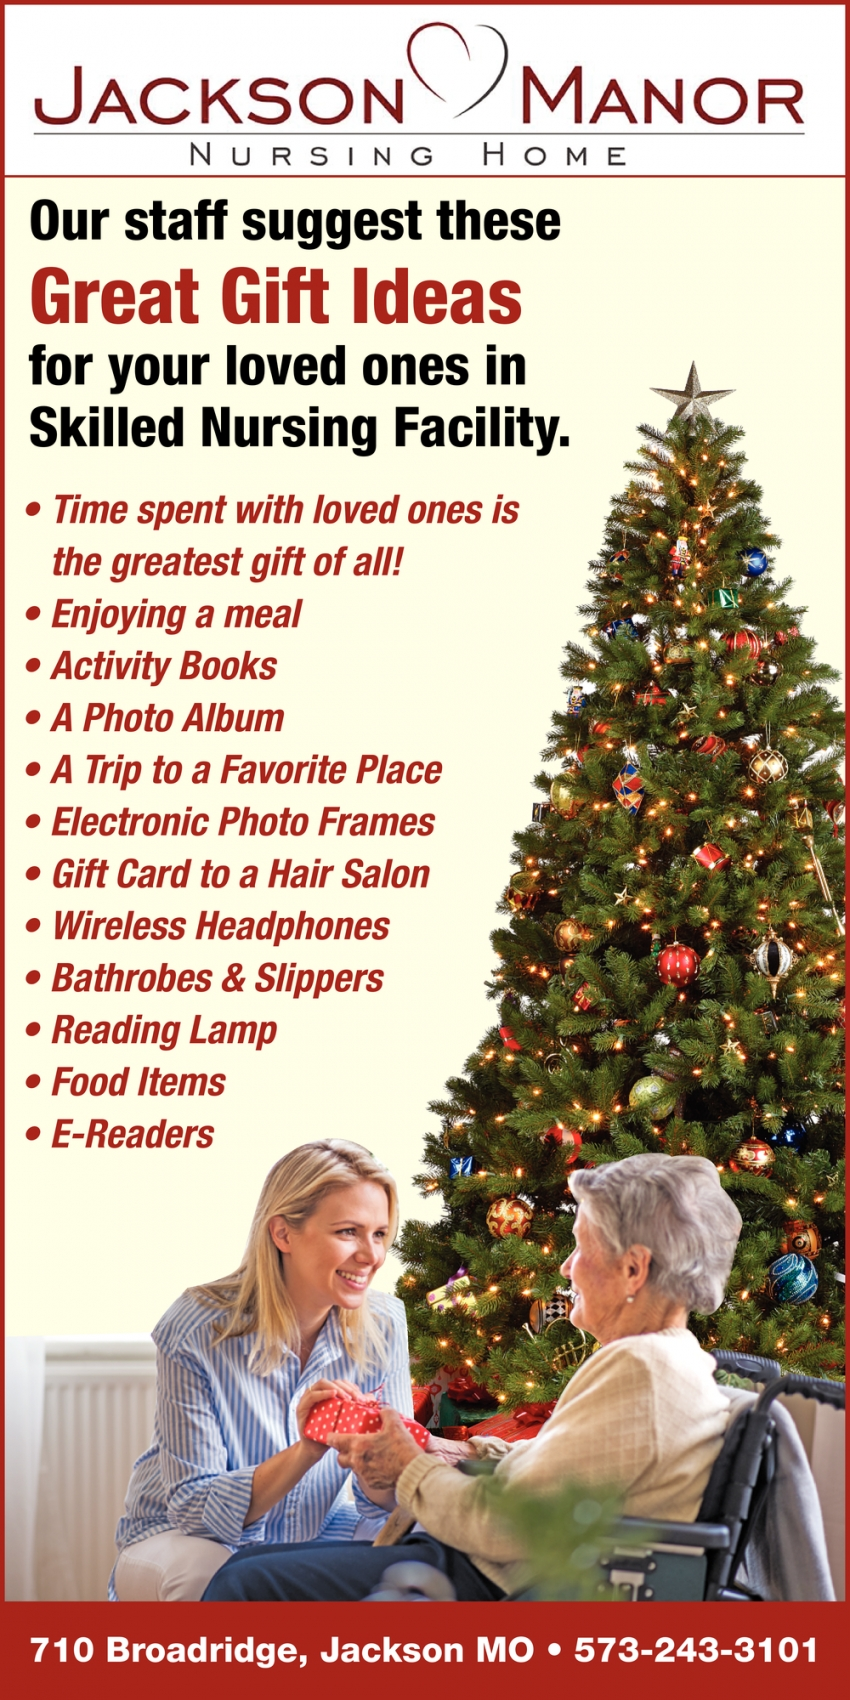 Our Staff Suggest These Great Gift Ideas for Your Loved Ones in Skilled Nursing Facility